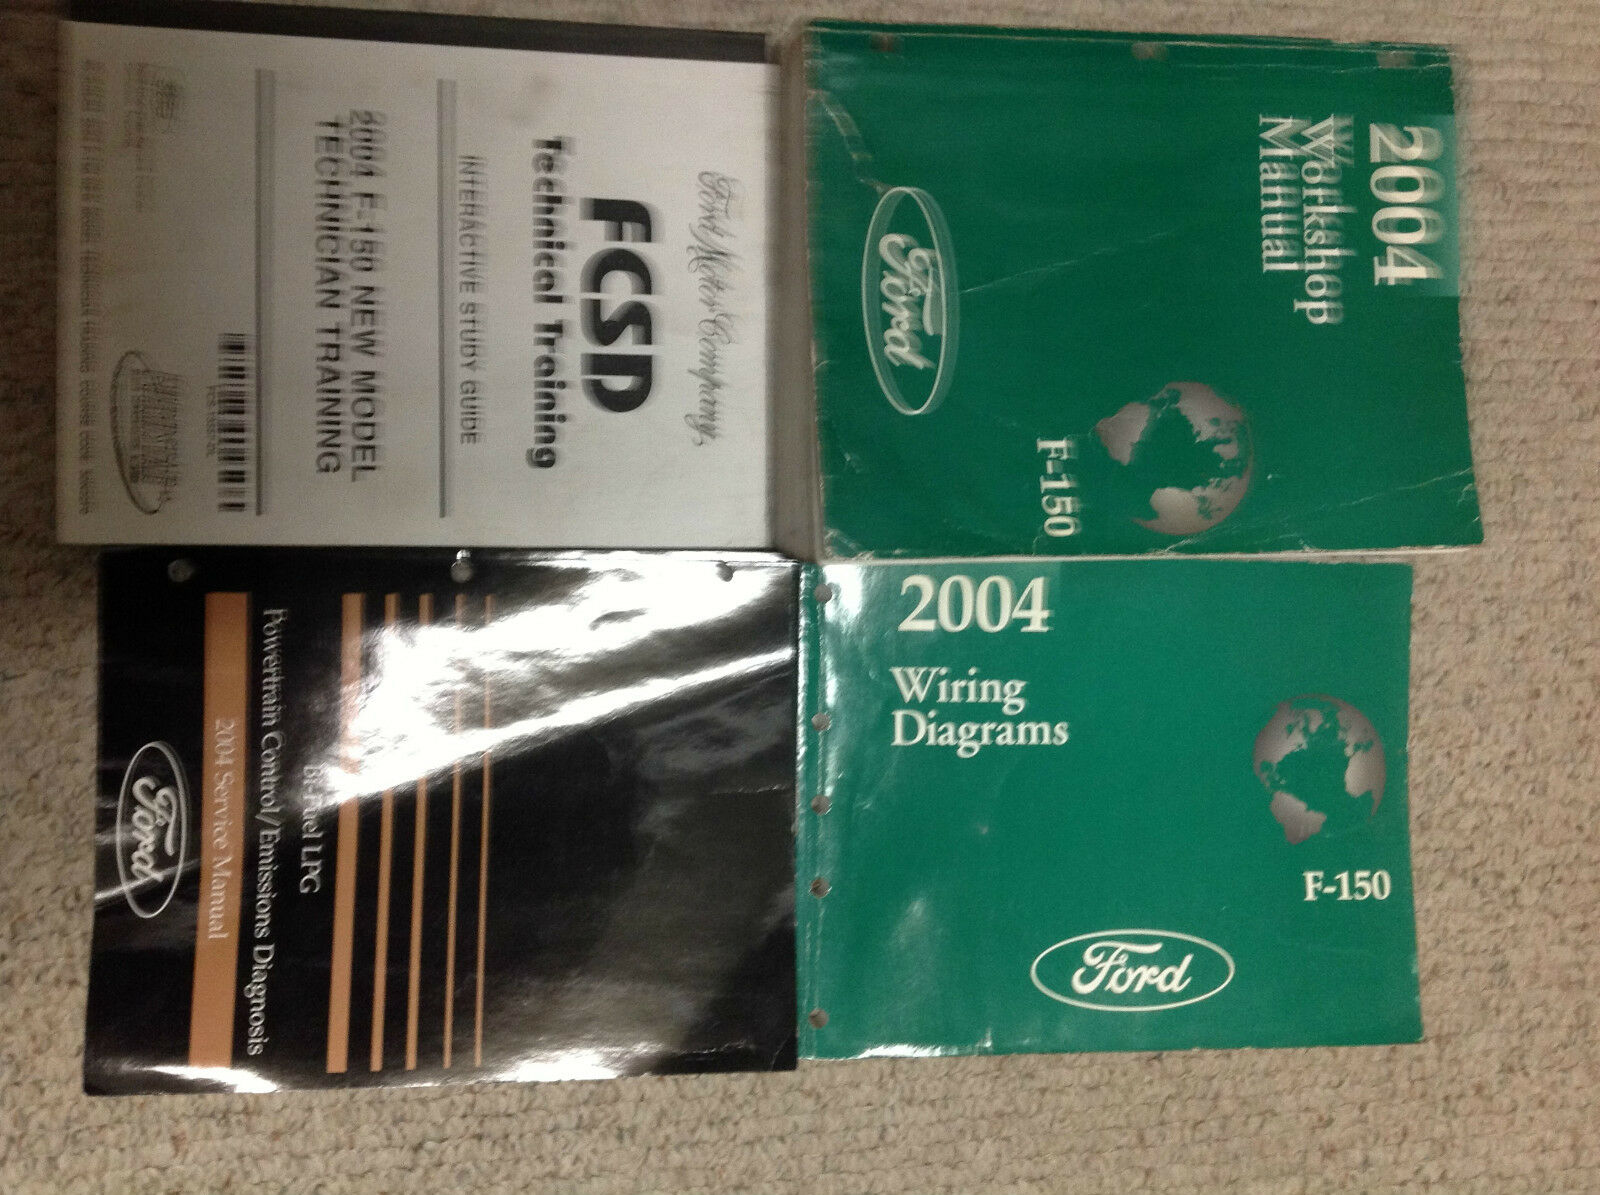 2004 FORD F150 F-150 TRUCK Service Shop Repair Manual Set OEM W EWD + 1 of 1Only  1 available ...